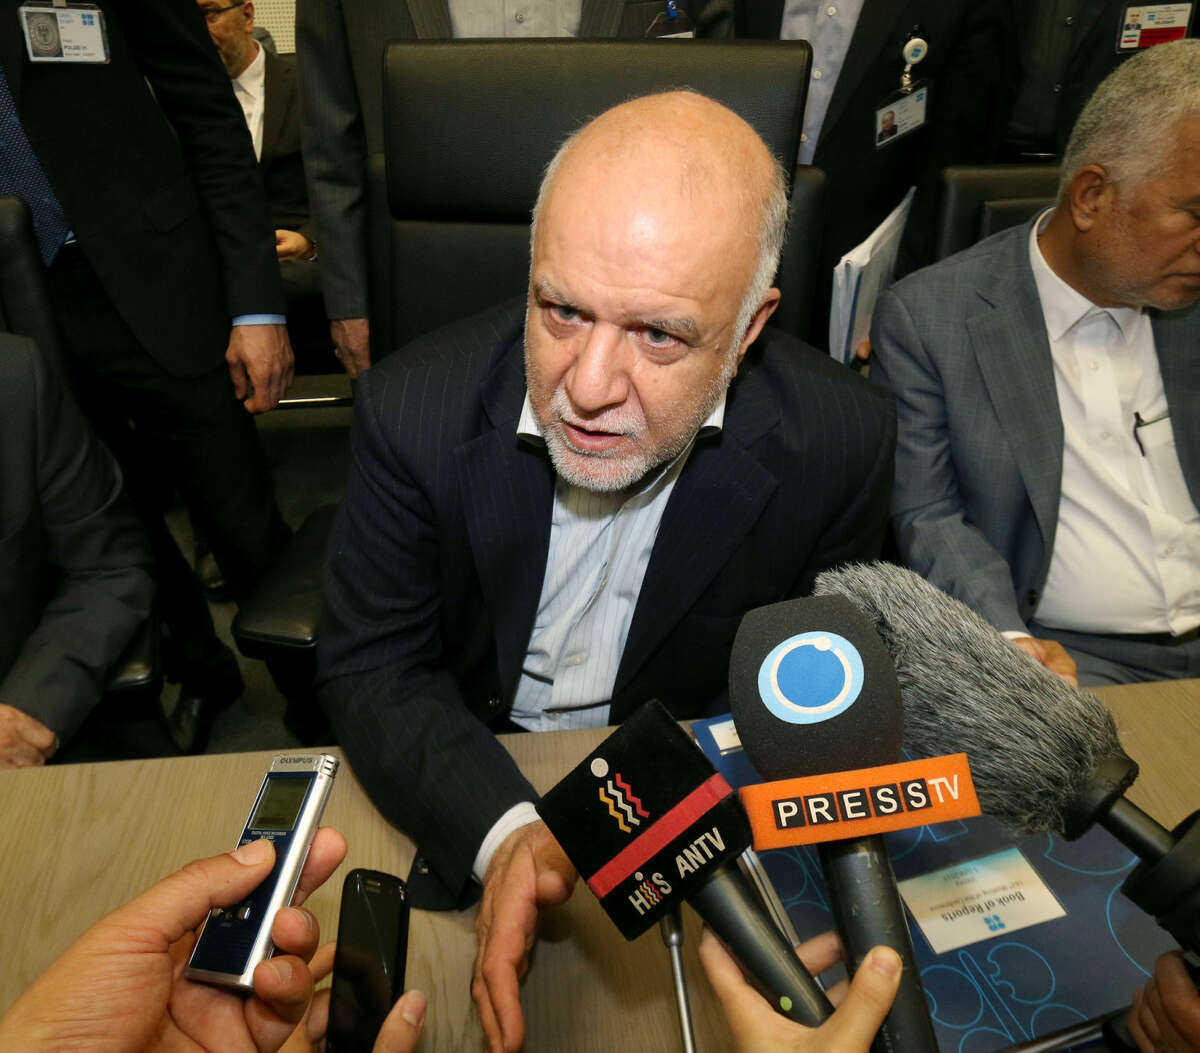 Iran's Minister of Petroleum Bijan Namdar Zangeneh speaks to journalists prior to the start of a meeting of the Organization of the Petroleum Exporting Countries, OPEC, at their headquarters in Vienna, Austria, Friday, June 5, 2015. (AP Photo/Ronald Zak)